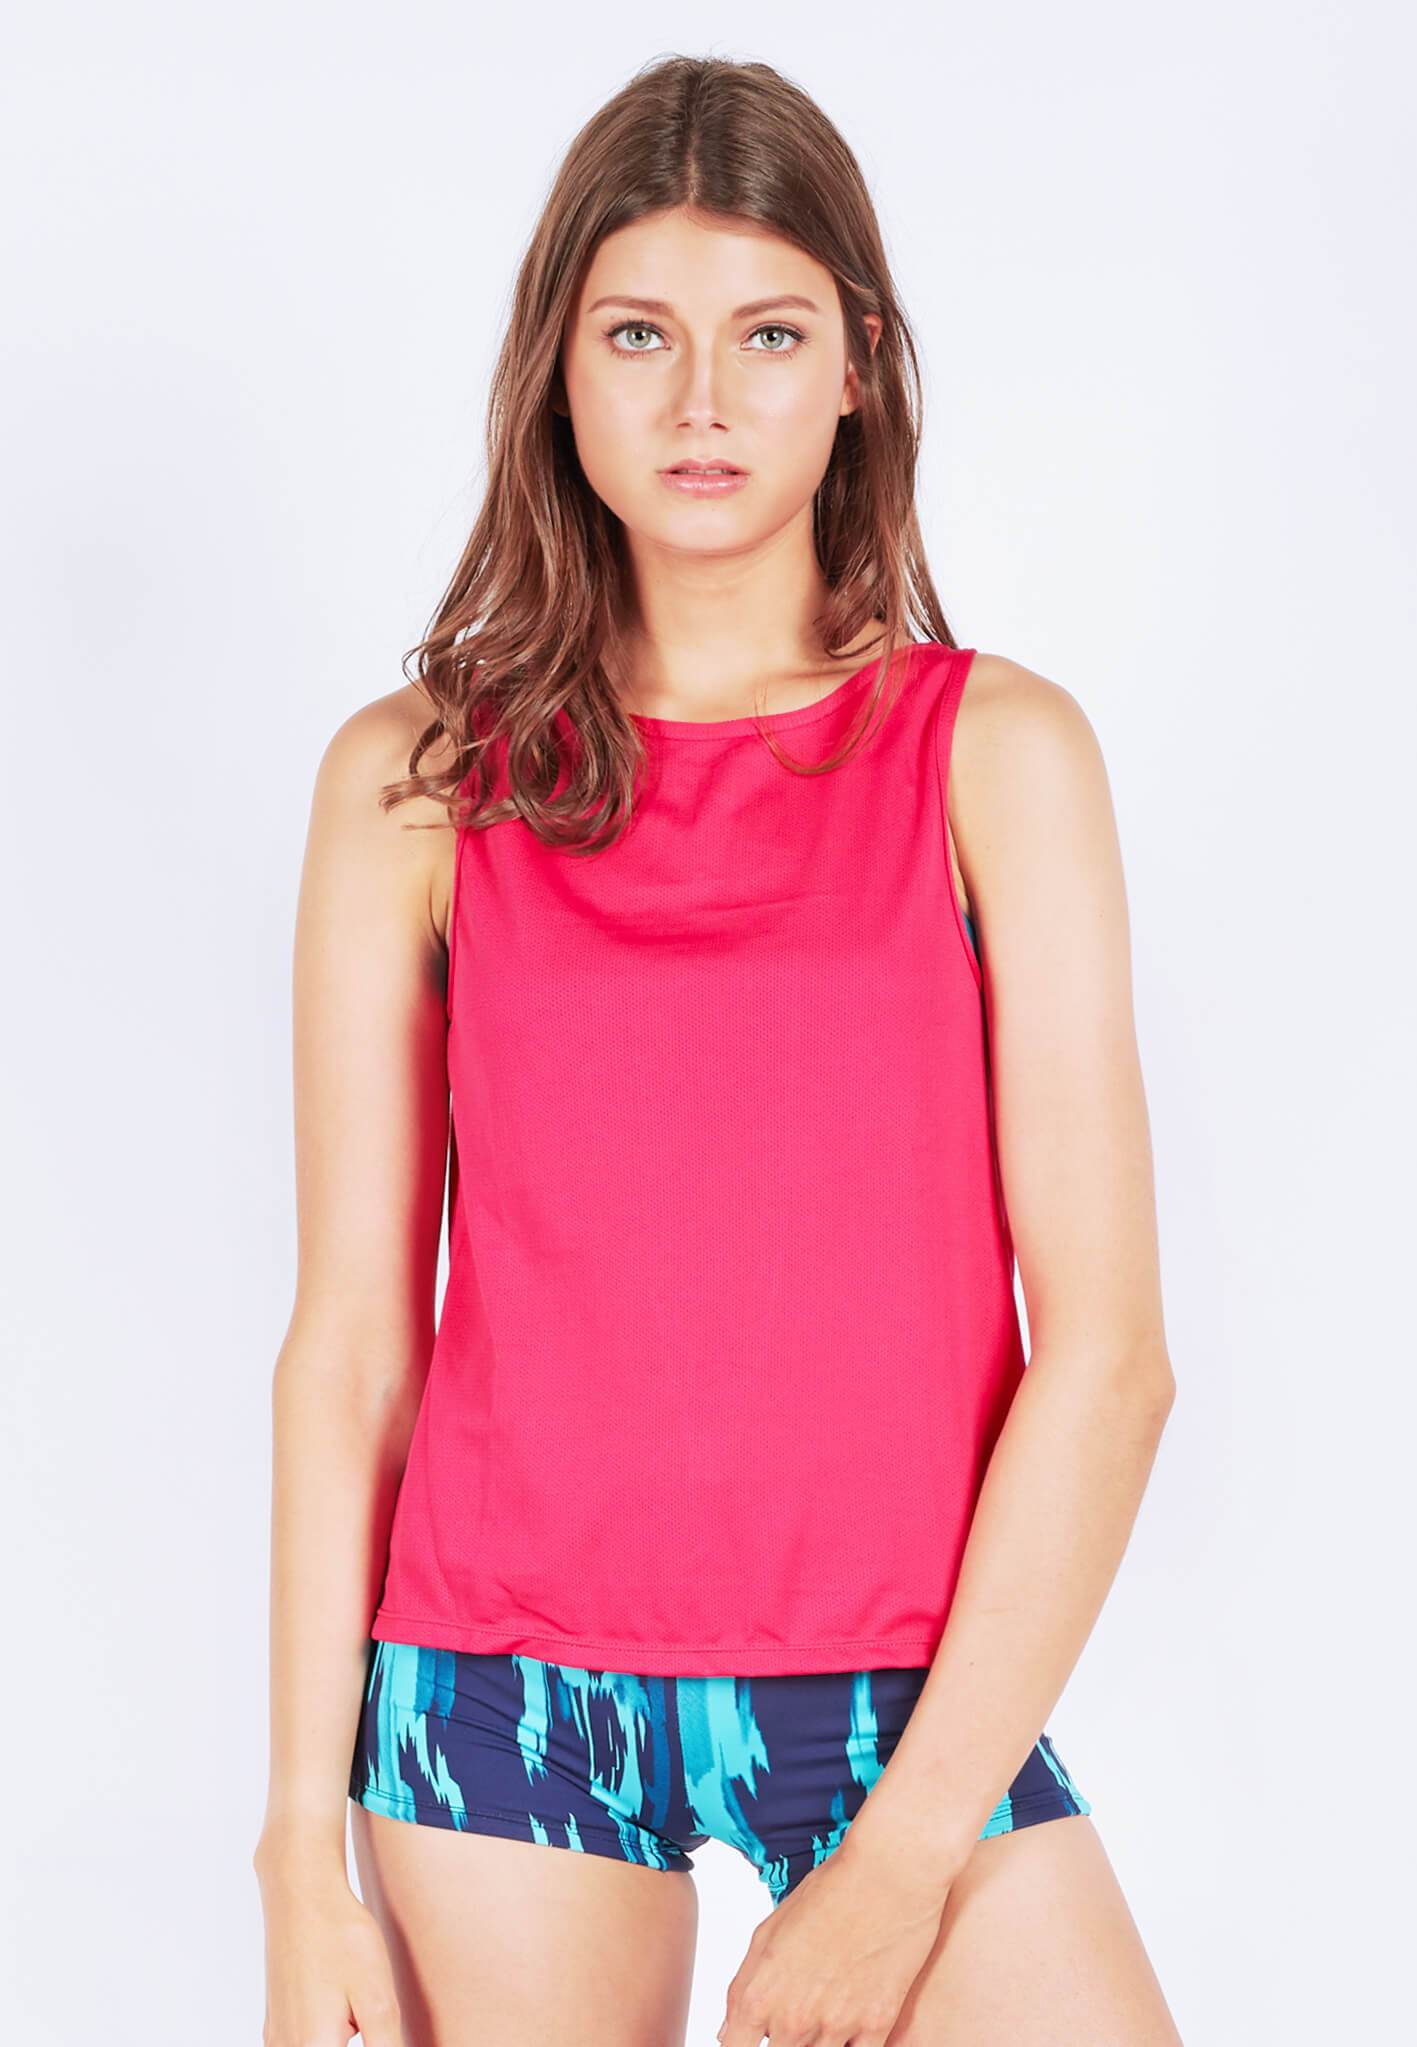 Uplift Tank Top (with Open Back) in Hot Pink (S - XL)